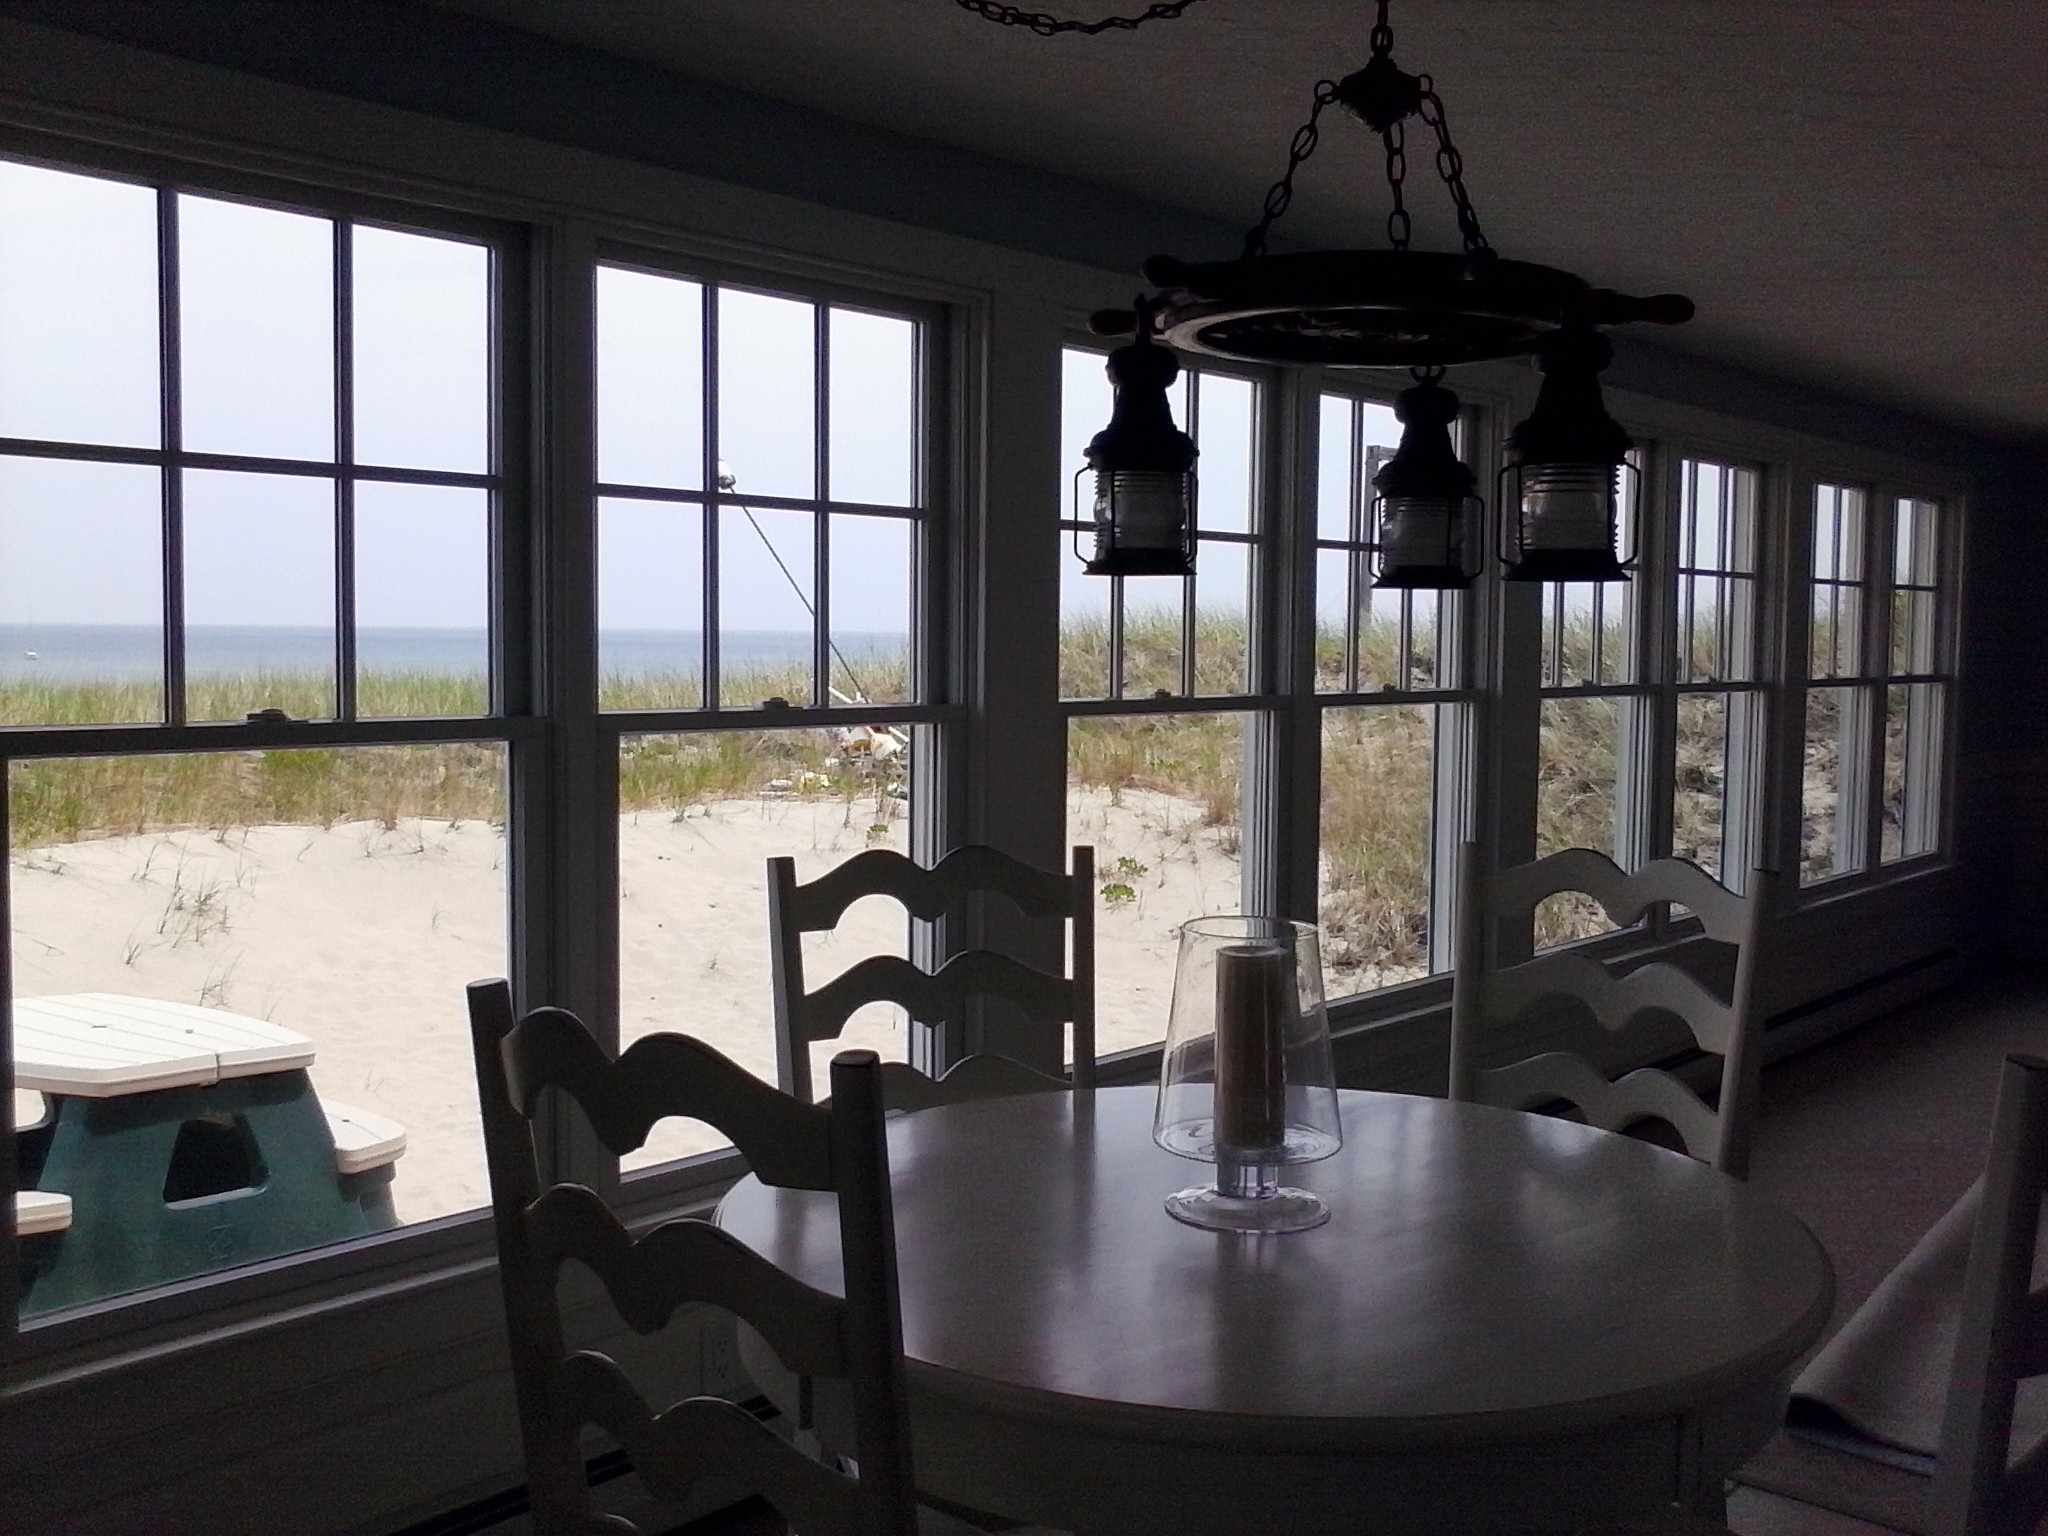 Sagamore beach window cleaning